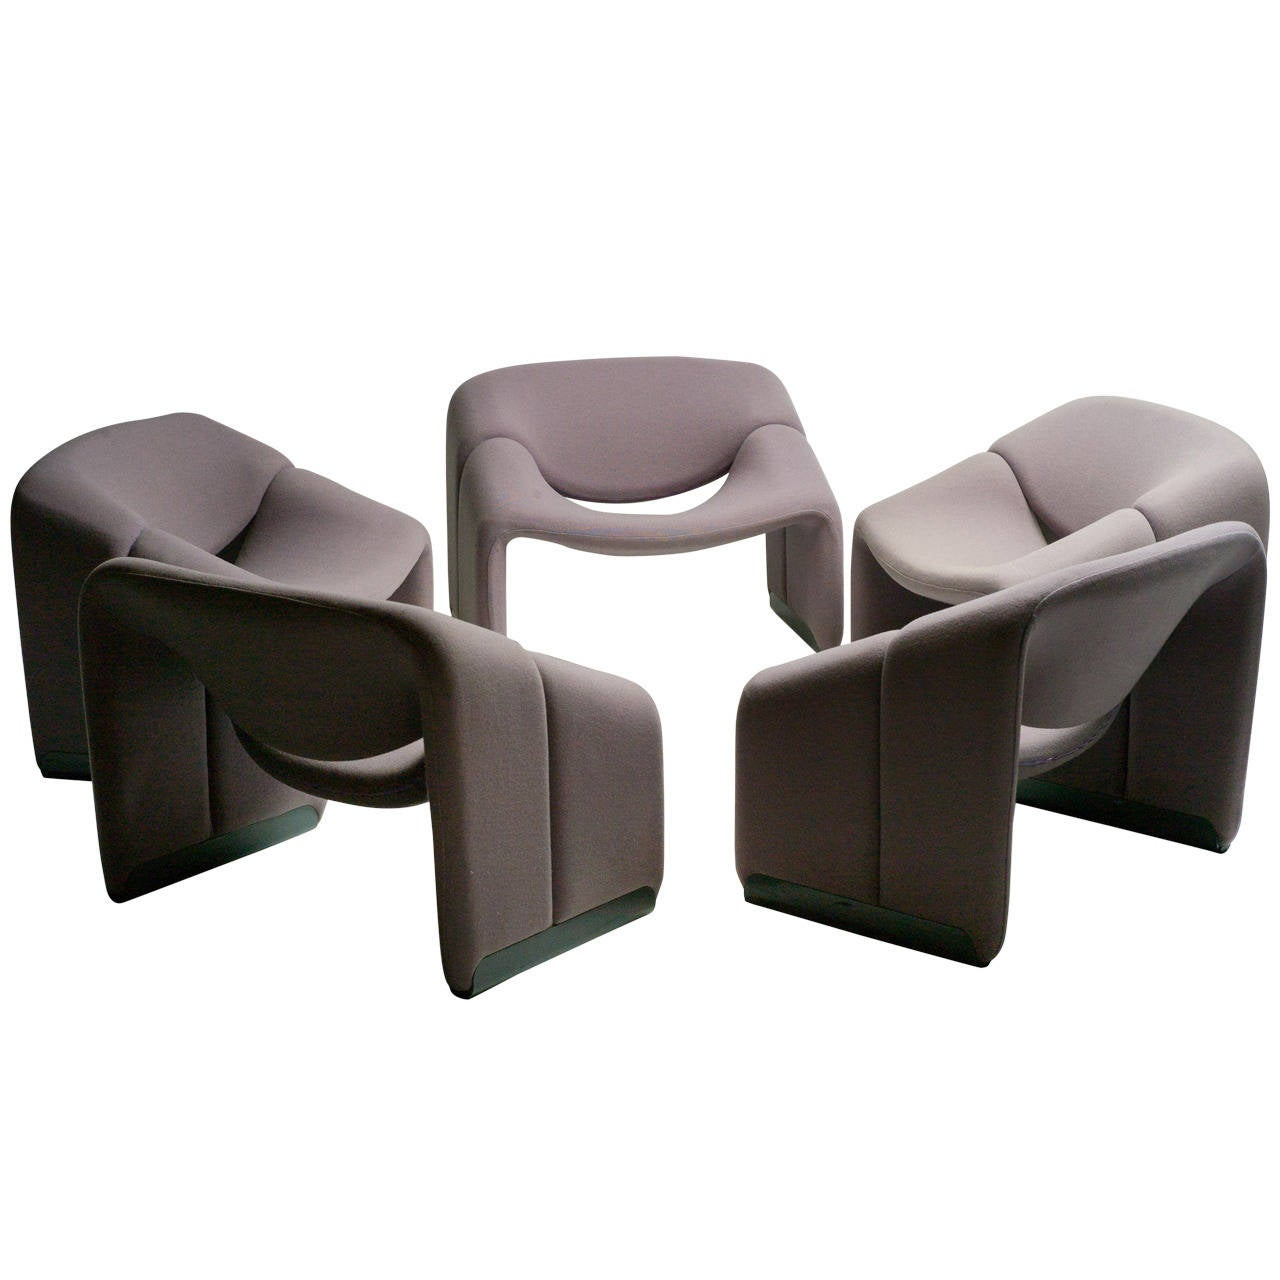 Pierre Paulin Ribbon Chairs In Missoni Fabric At 1stdibs: F598 Groovy Chair By Pierre Paulin For Artifort The